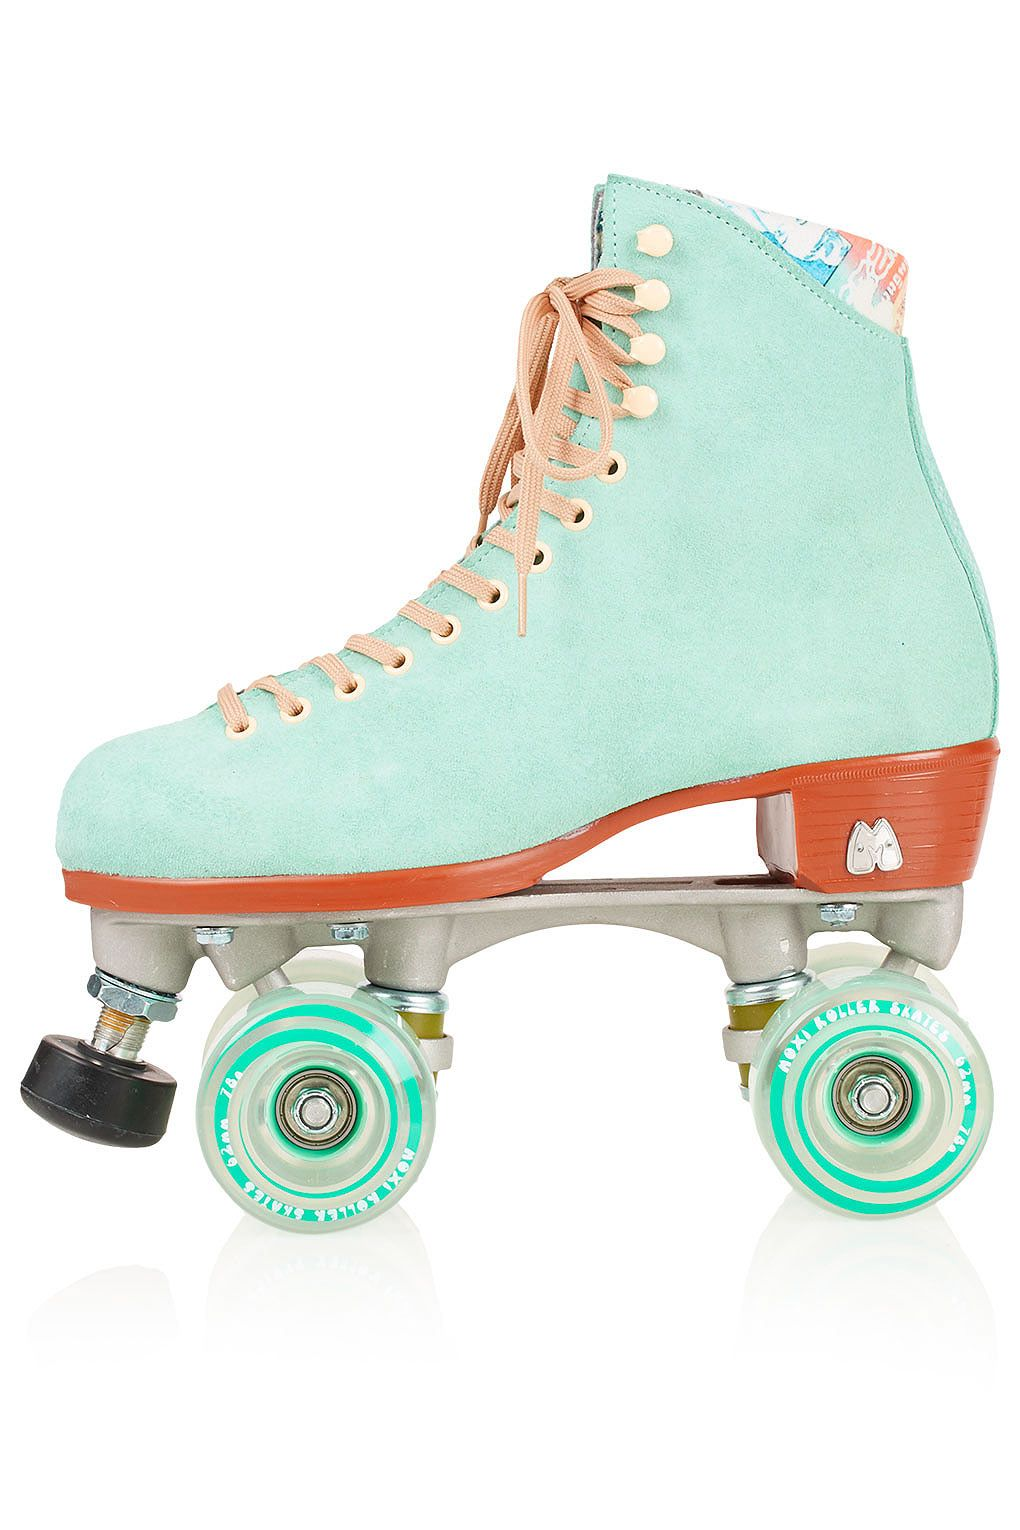 Moxi Lolly Roller Skates Roller skating, Urban